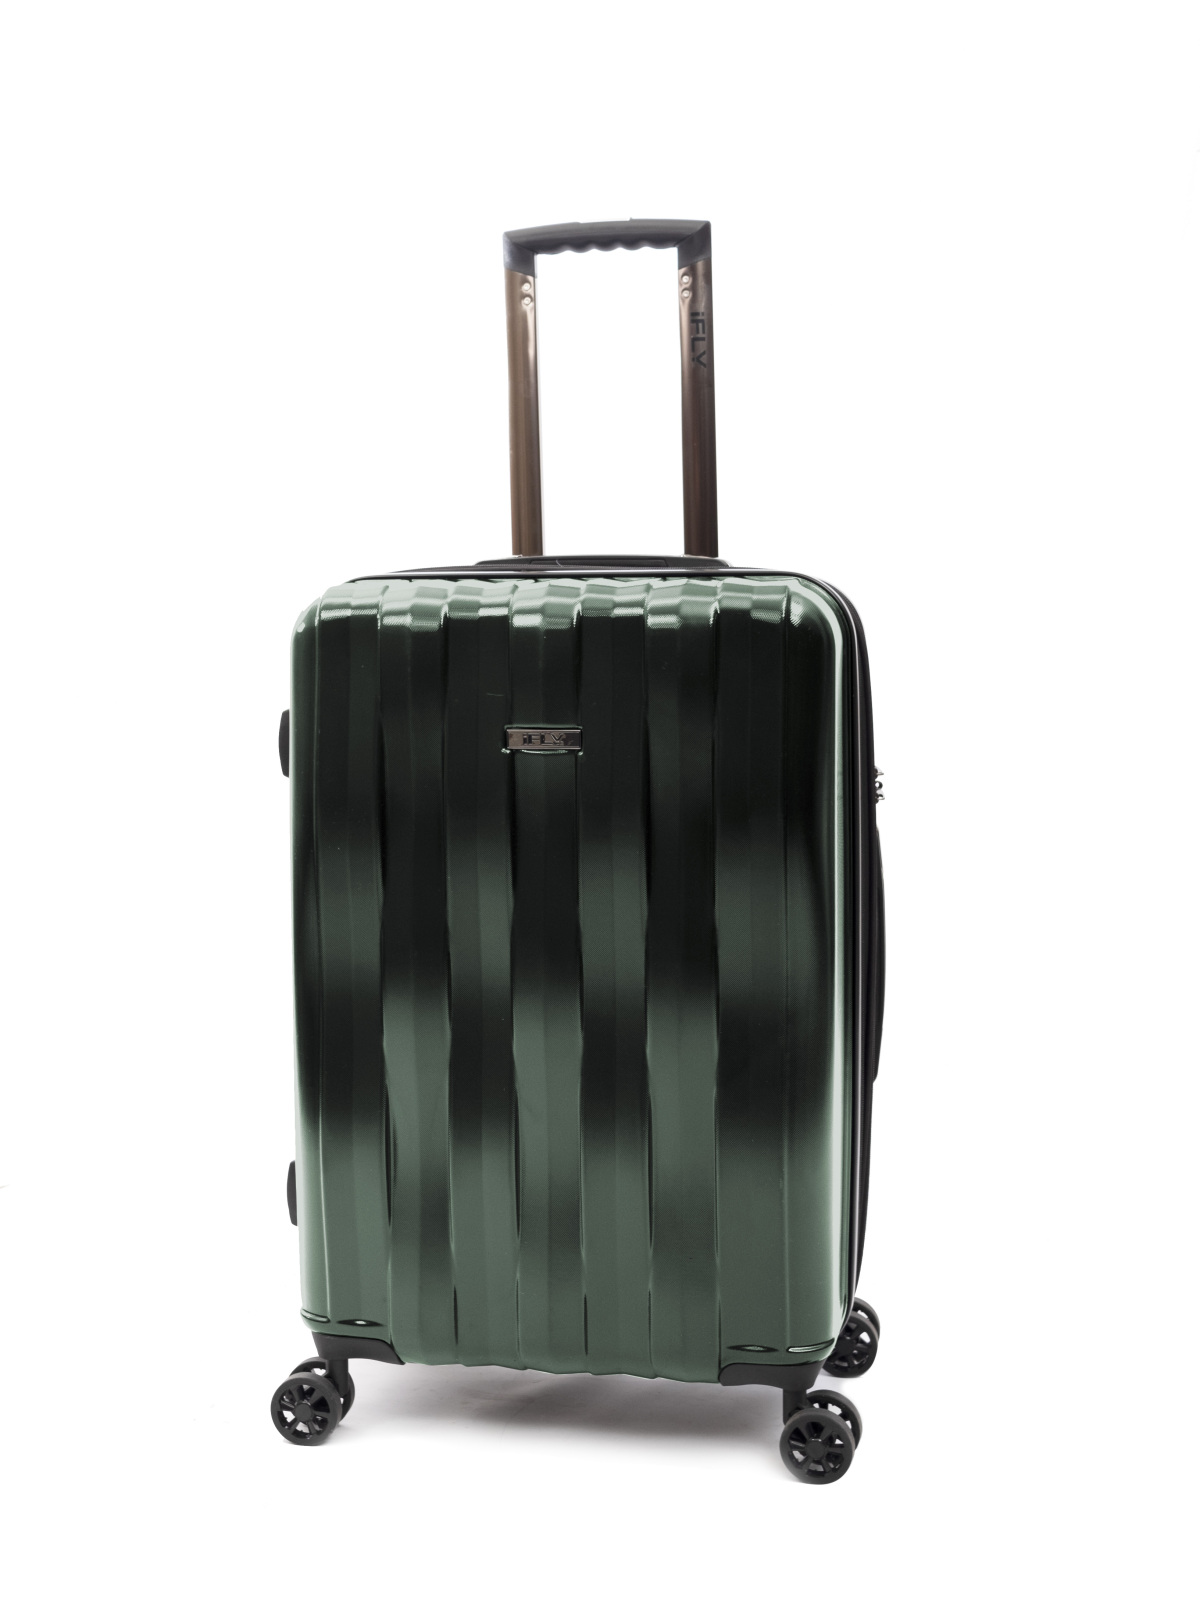 "iFLY Hard Sided Luggage Synergy 24"", Green"